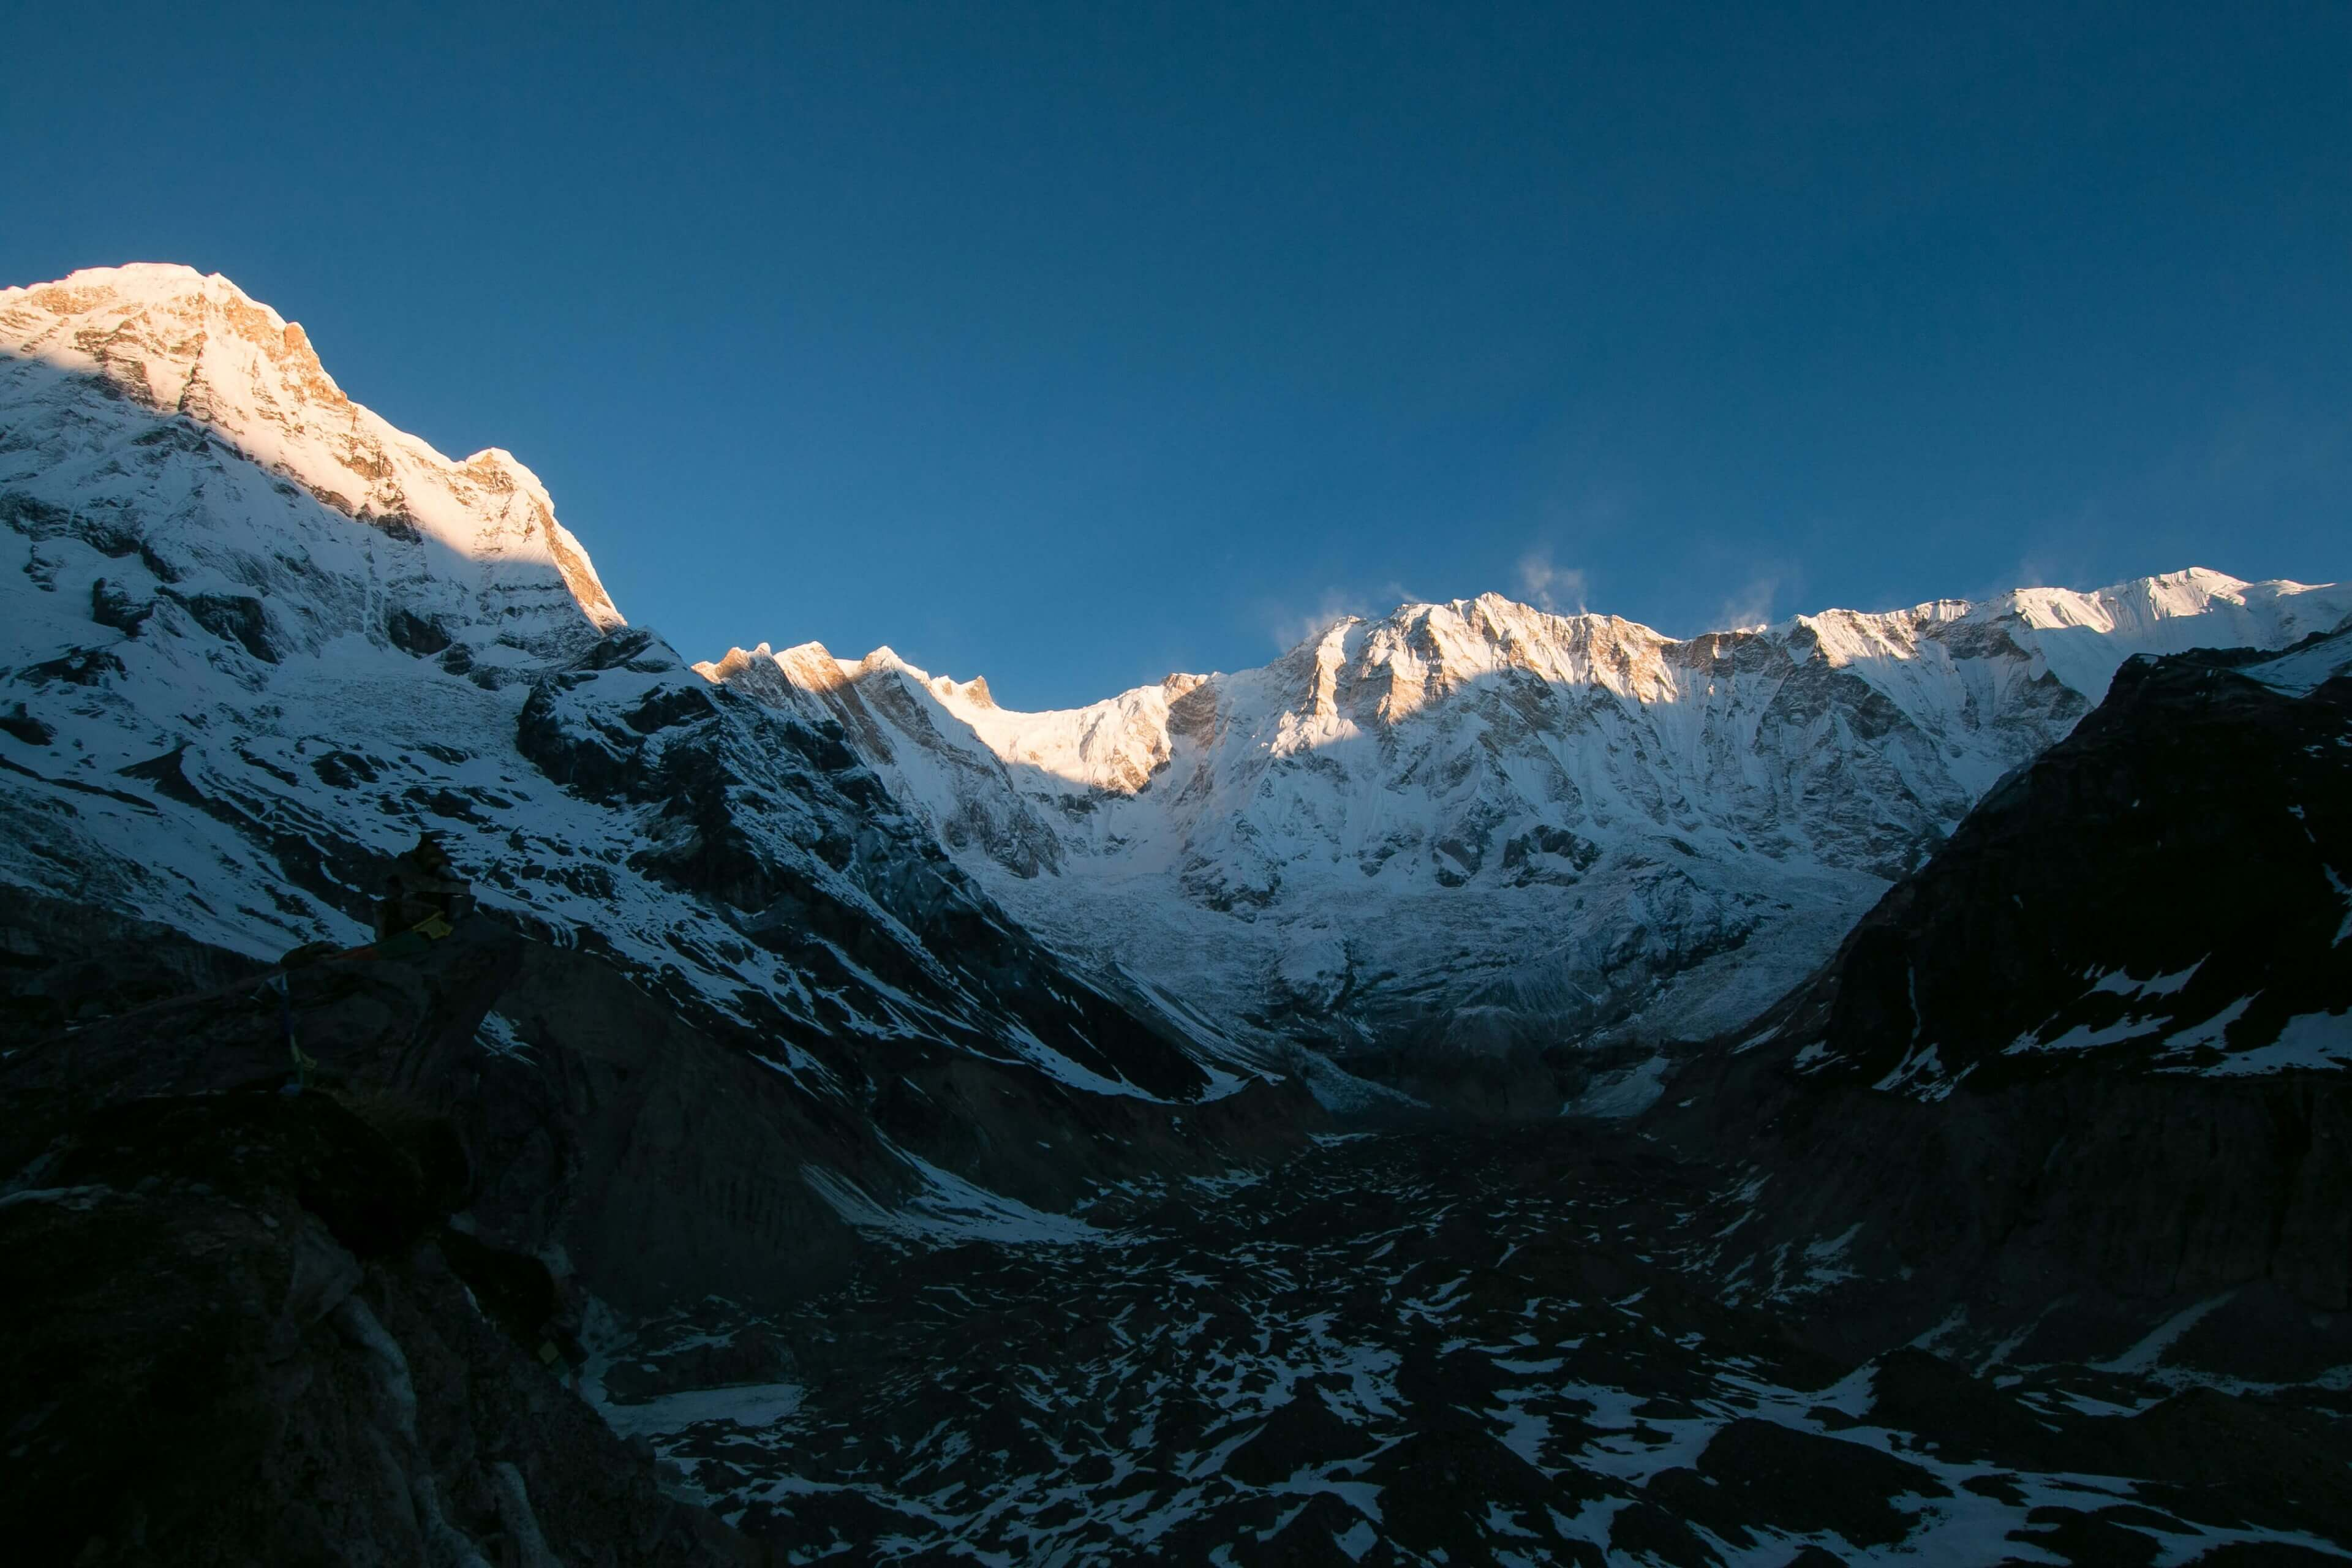 Sunrise Across The Annapurna Massive